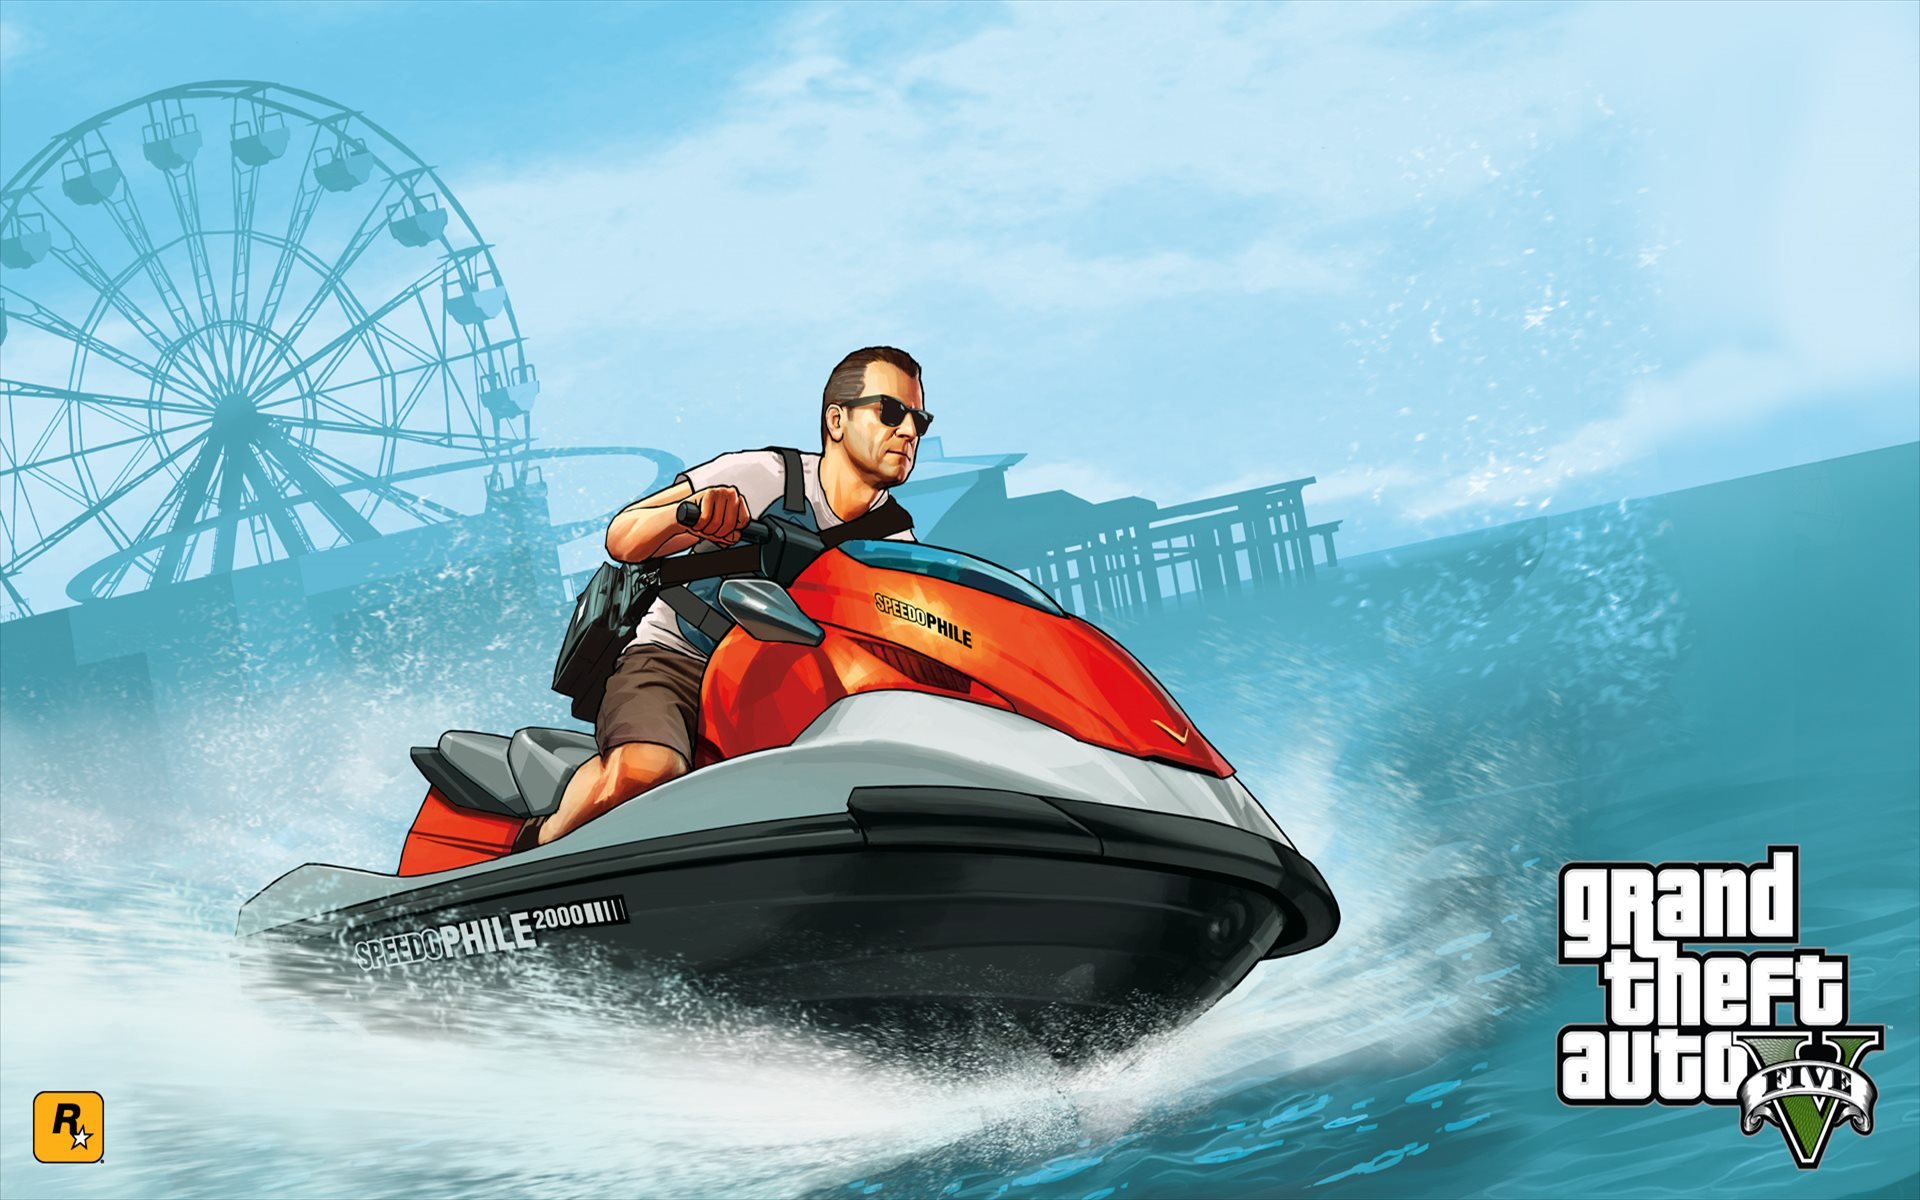 Download Cool GTA 5 Wallpapers GTA 5 Download 1920x1200